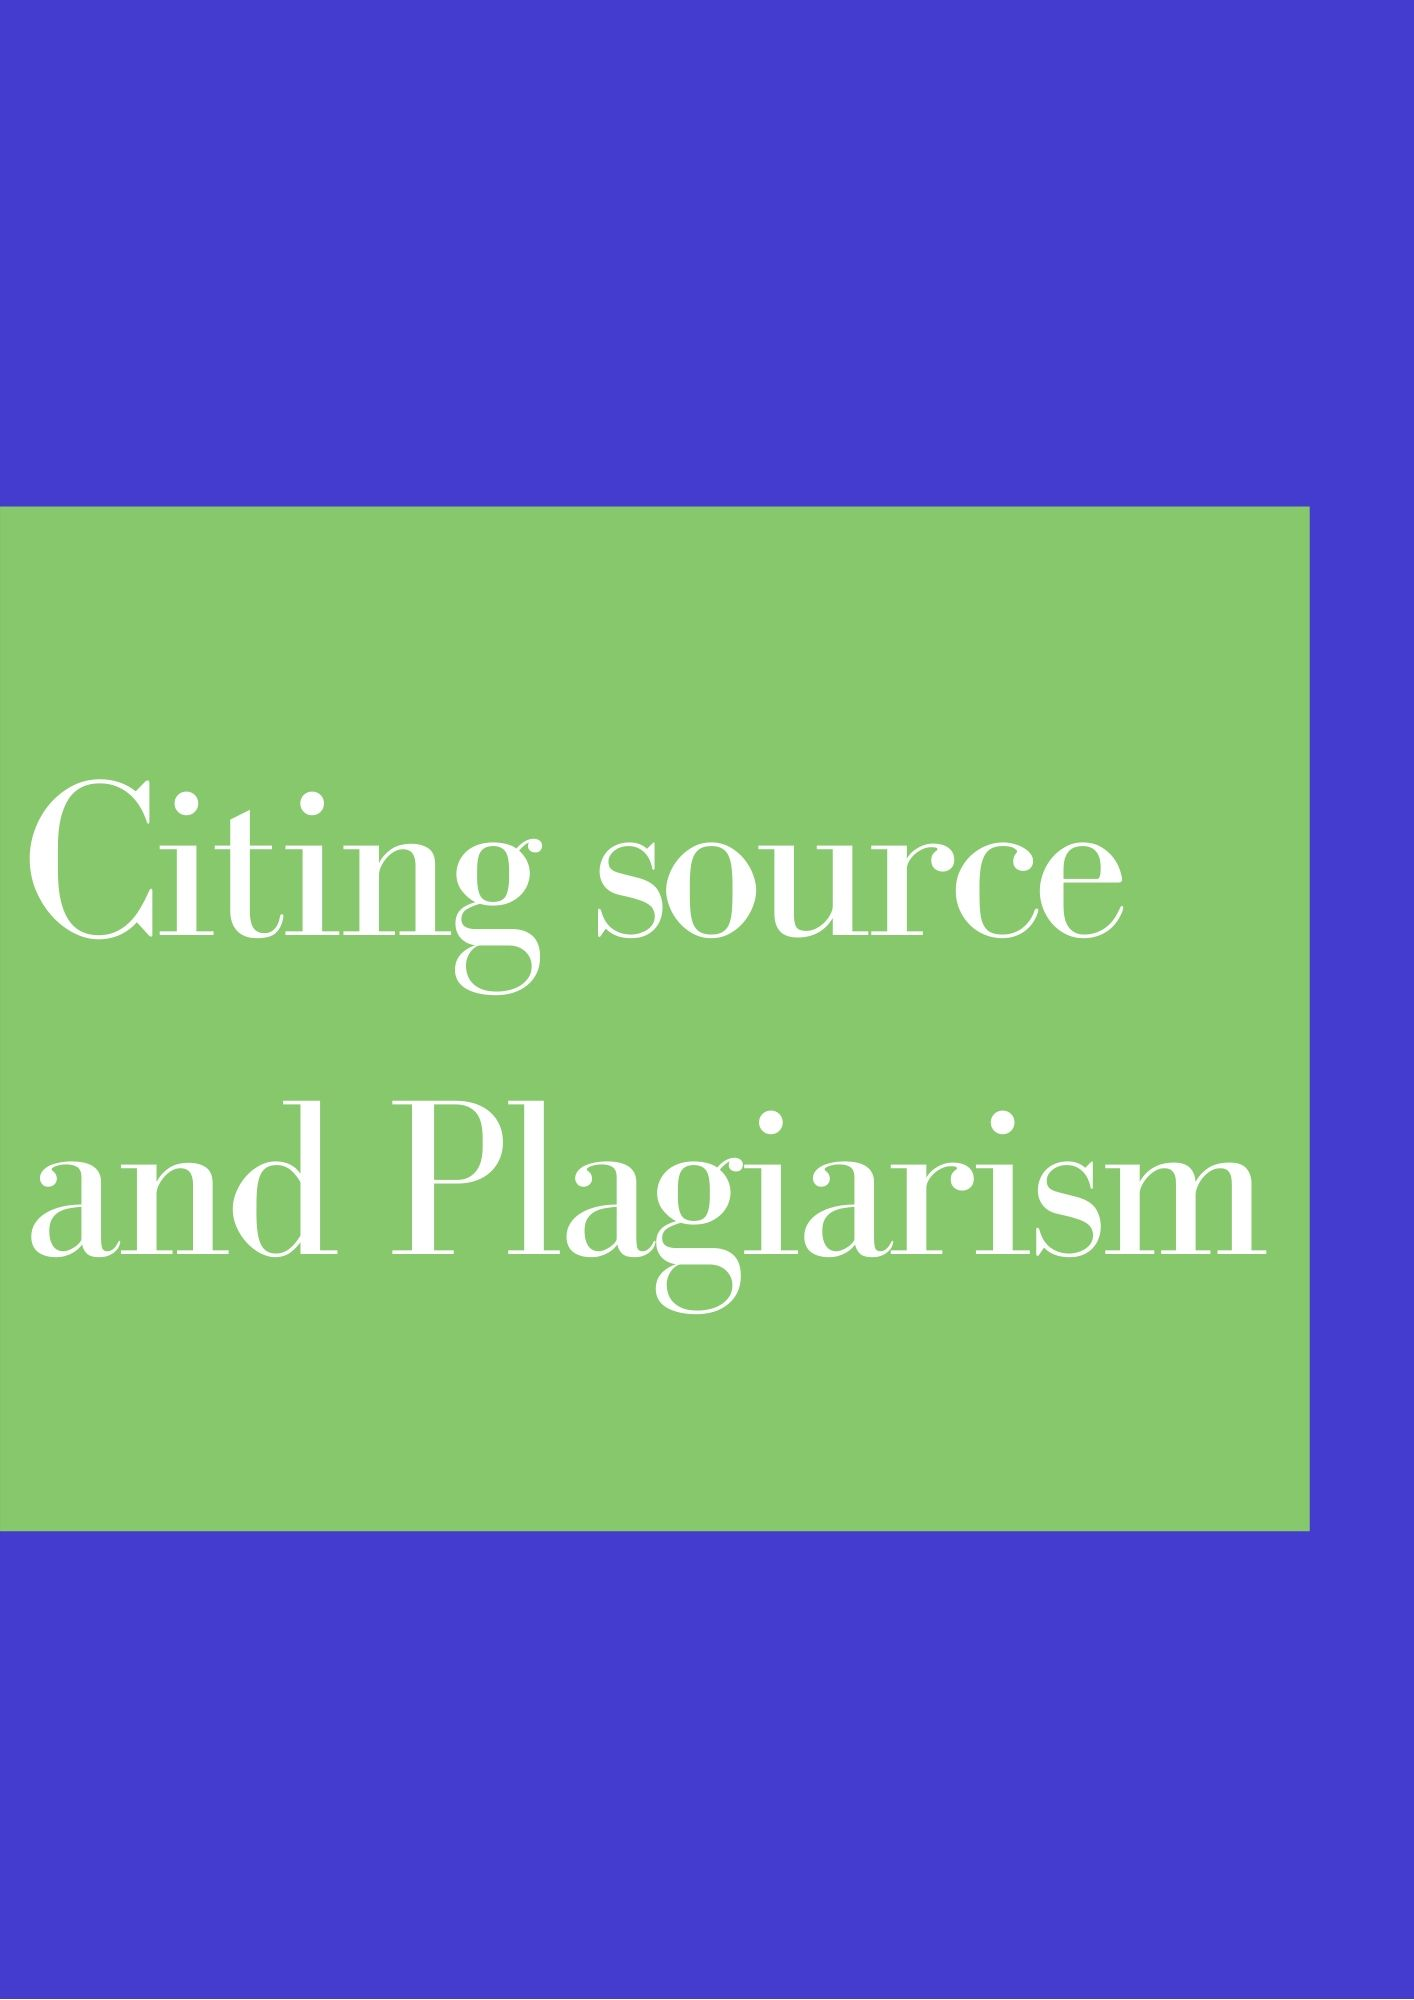 [PHYS 395] Citing Sources and Avoiding Plagiarism